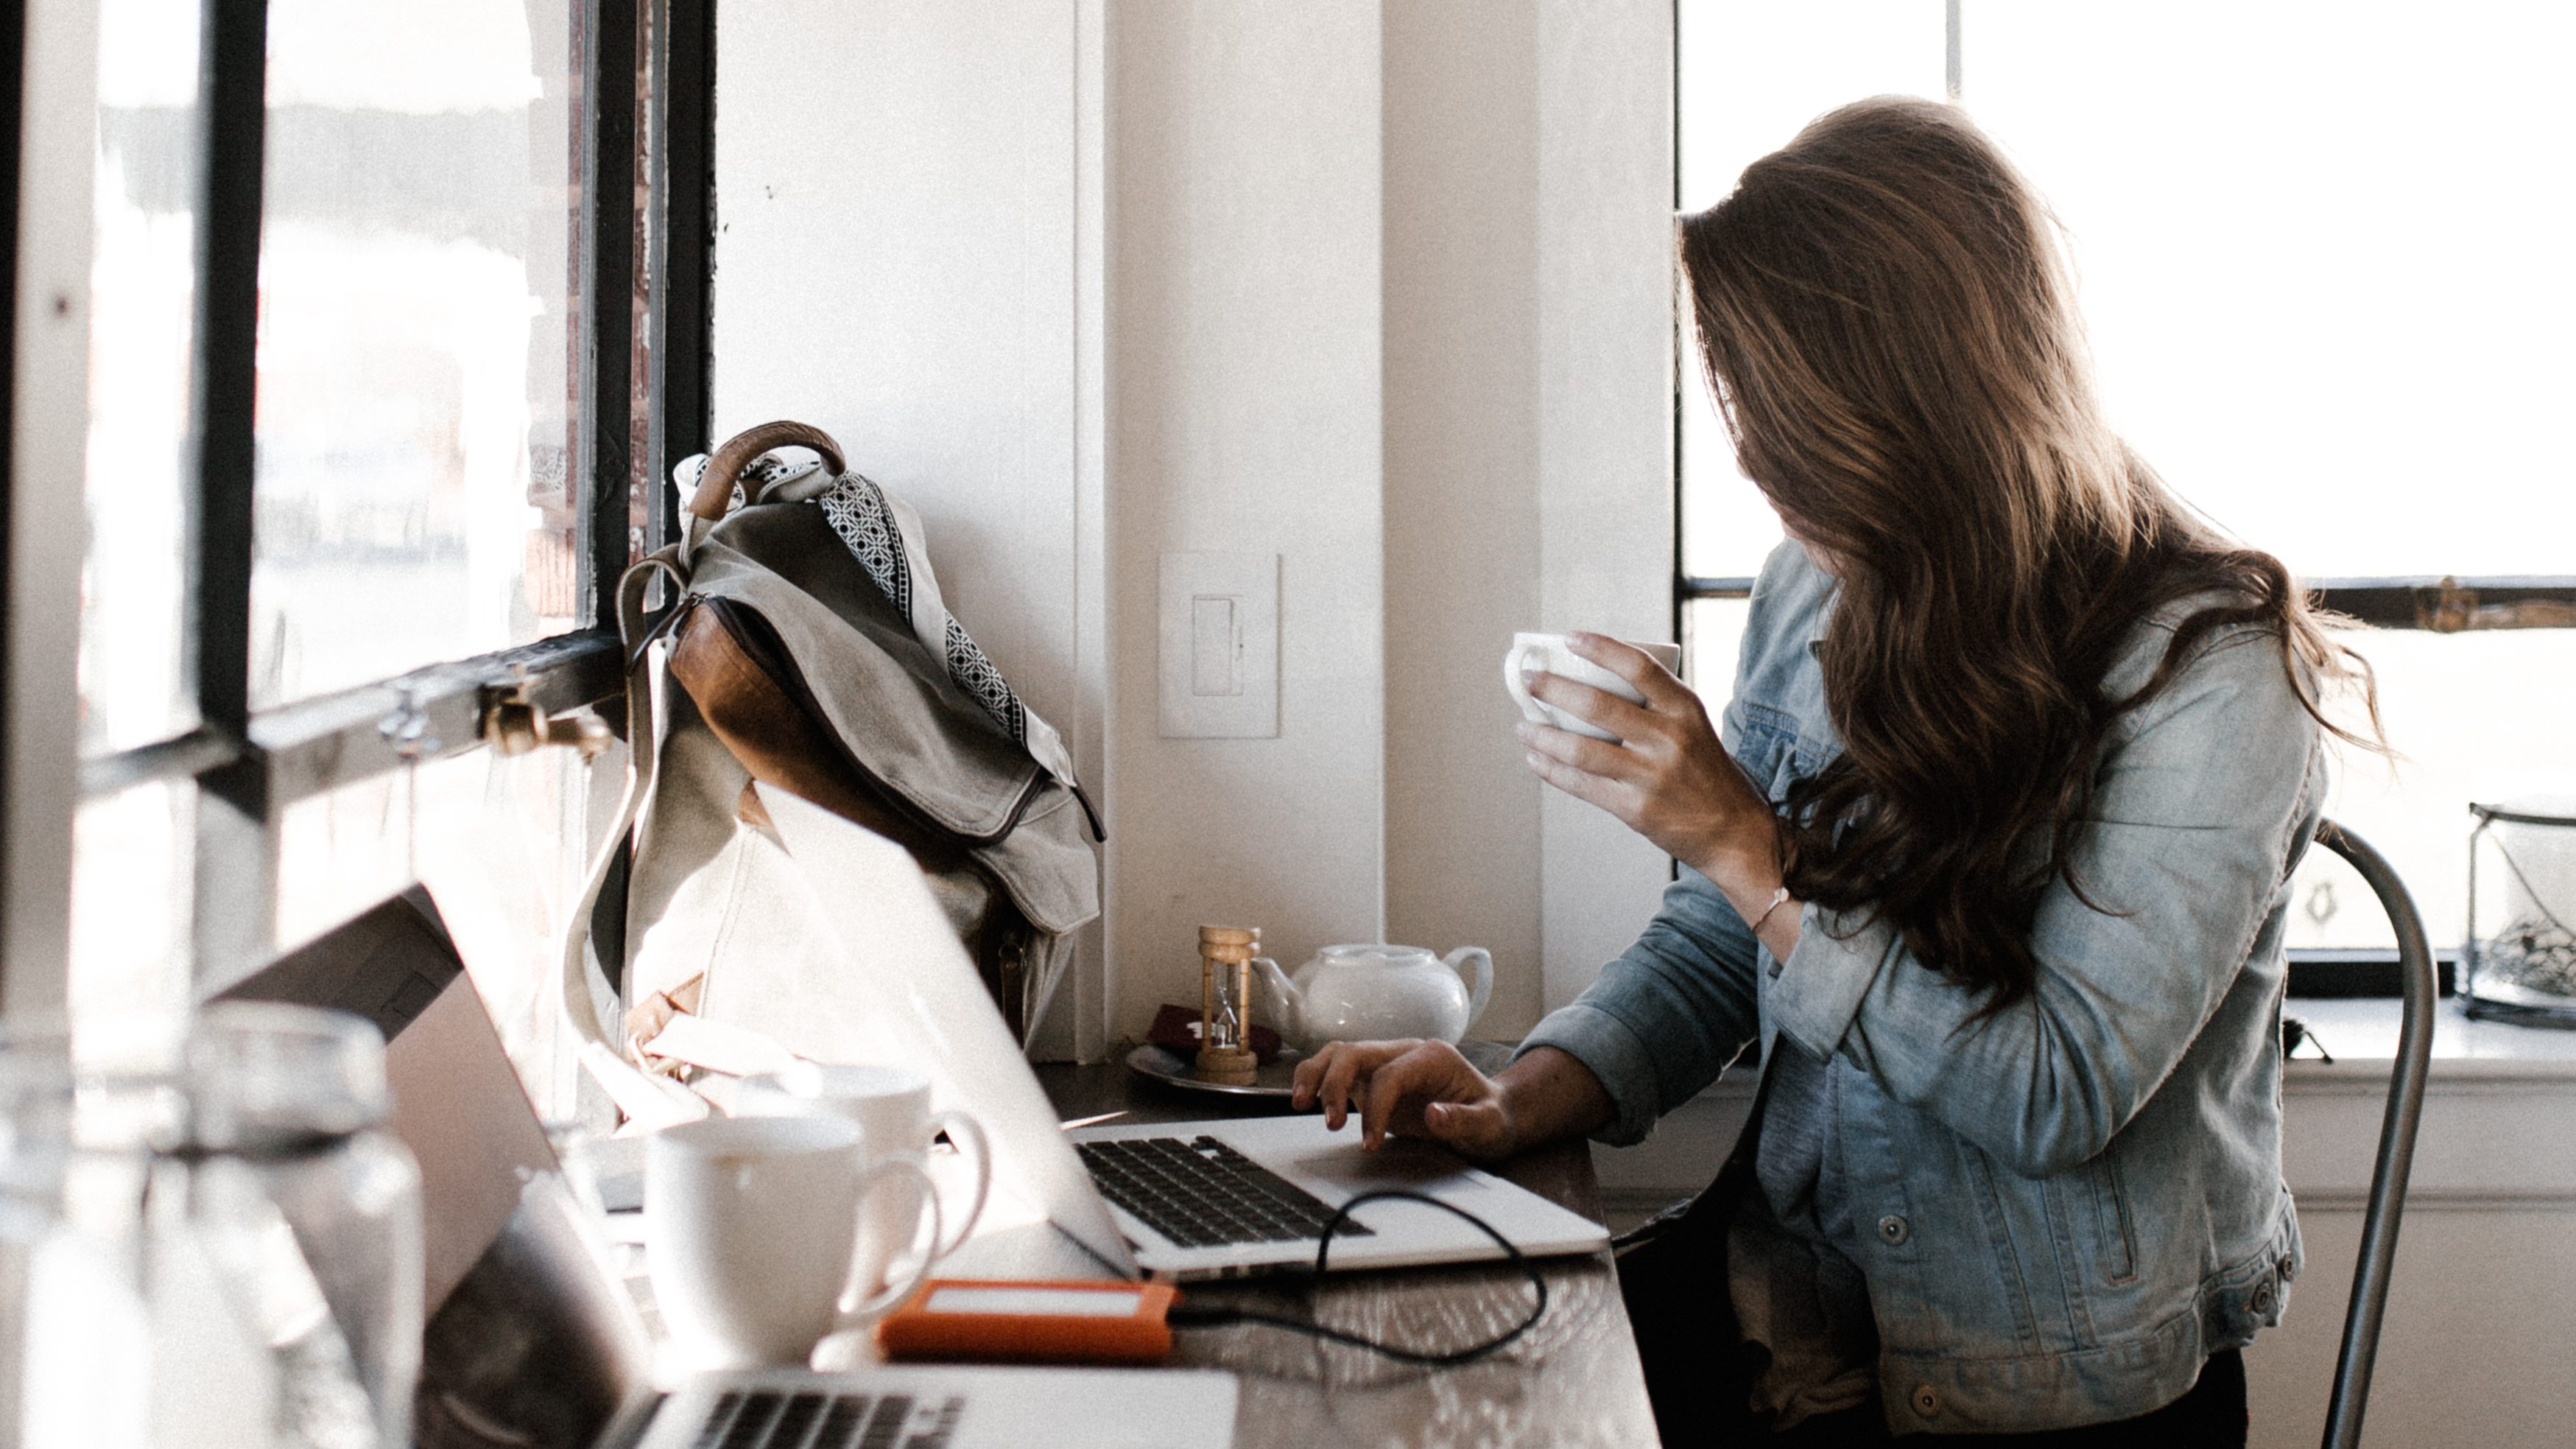 A woman drinks coffee checking her laptop